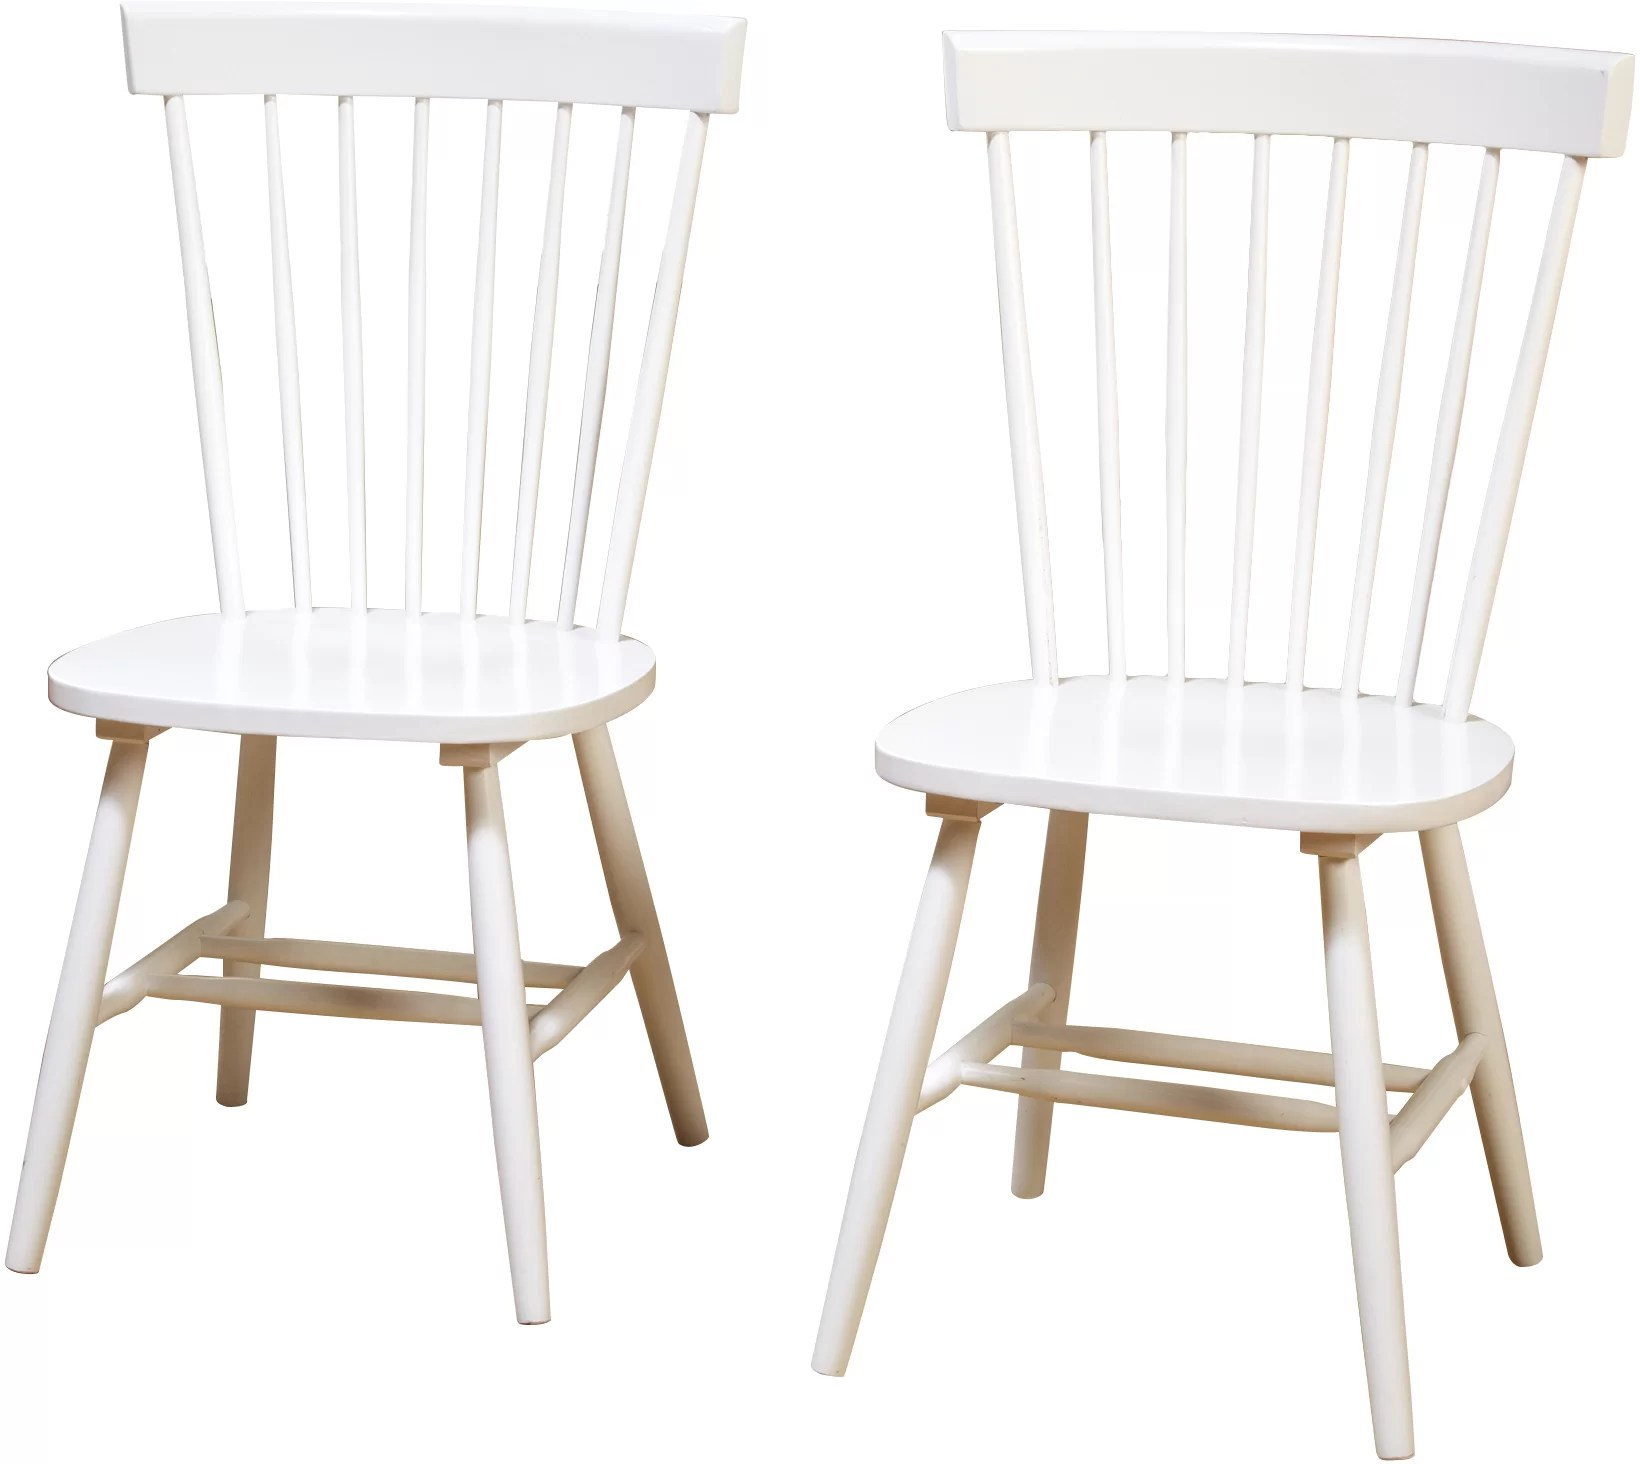 White Wooden Dining Chairs Royal Palm Beach Solid Wood Dining Chair